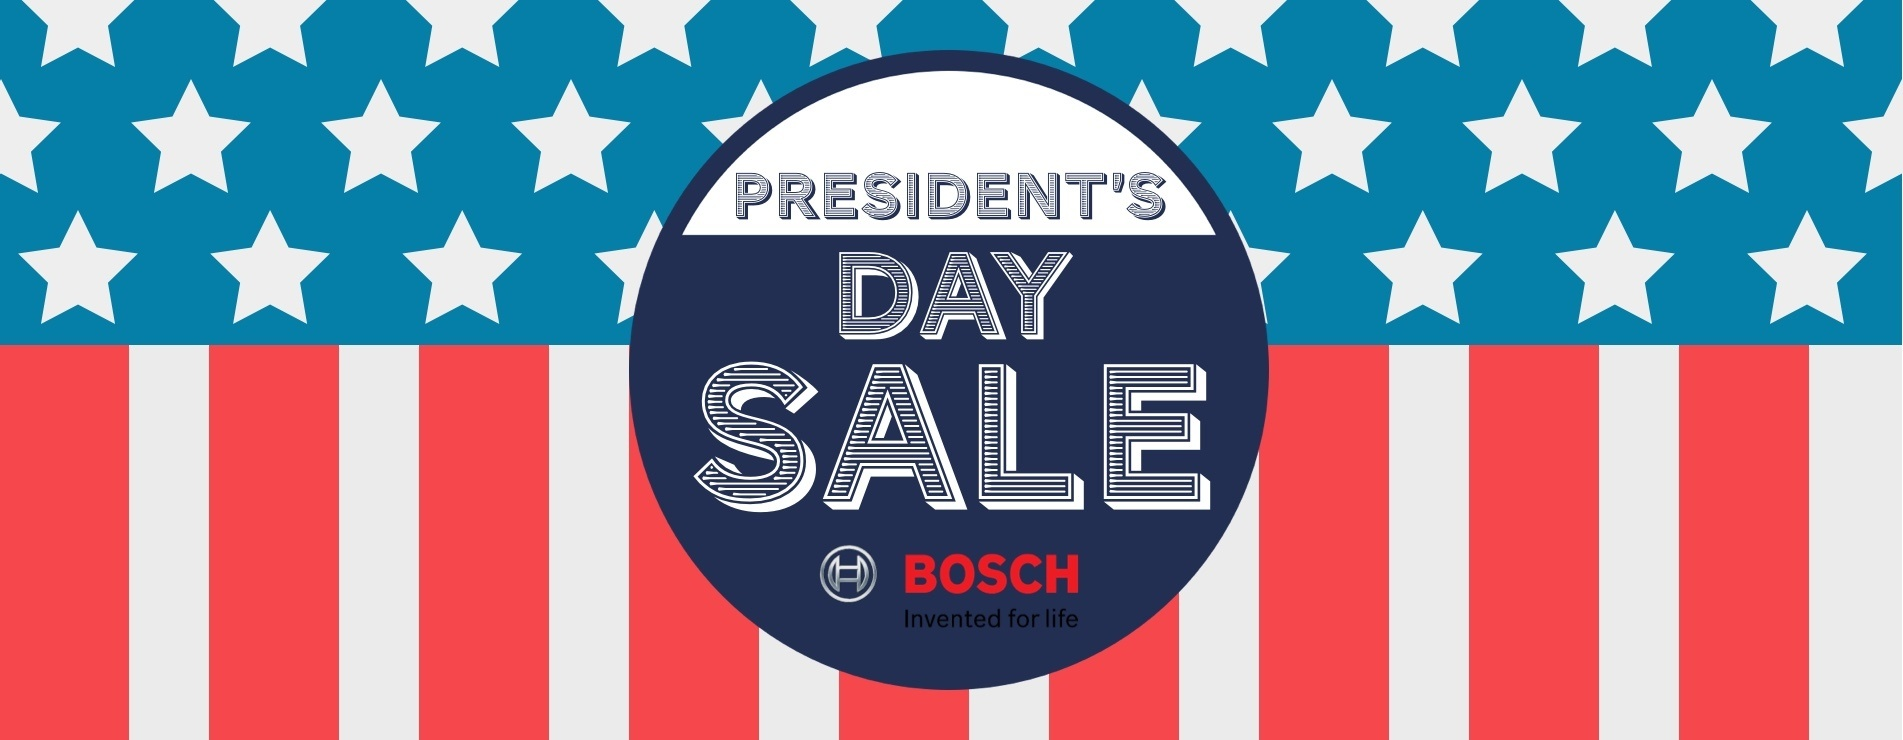 Bosch-Presidents-Day-2021